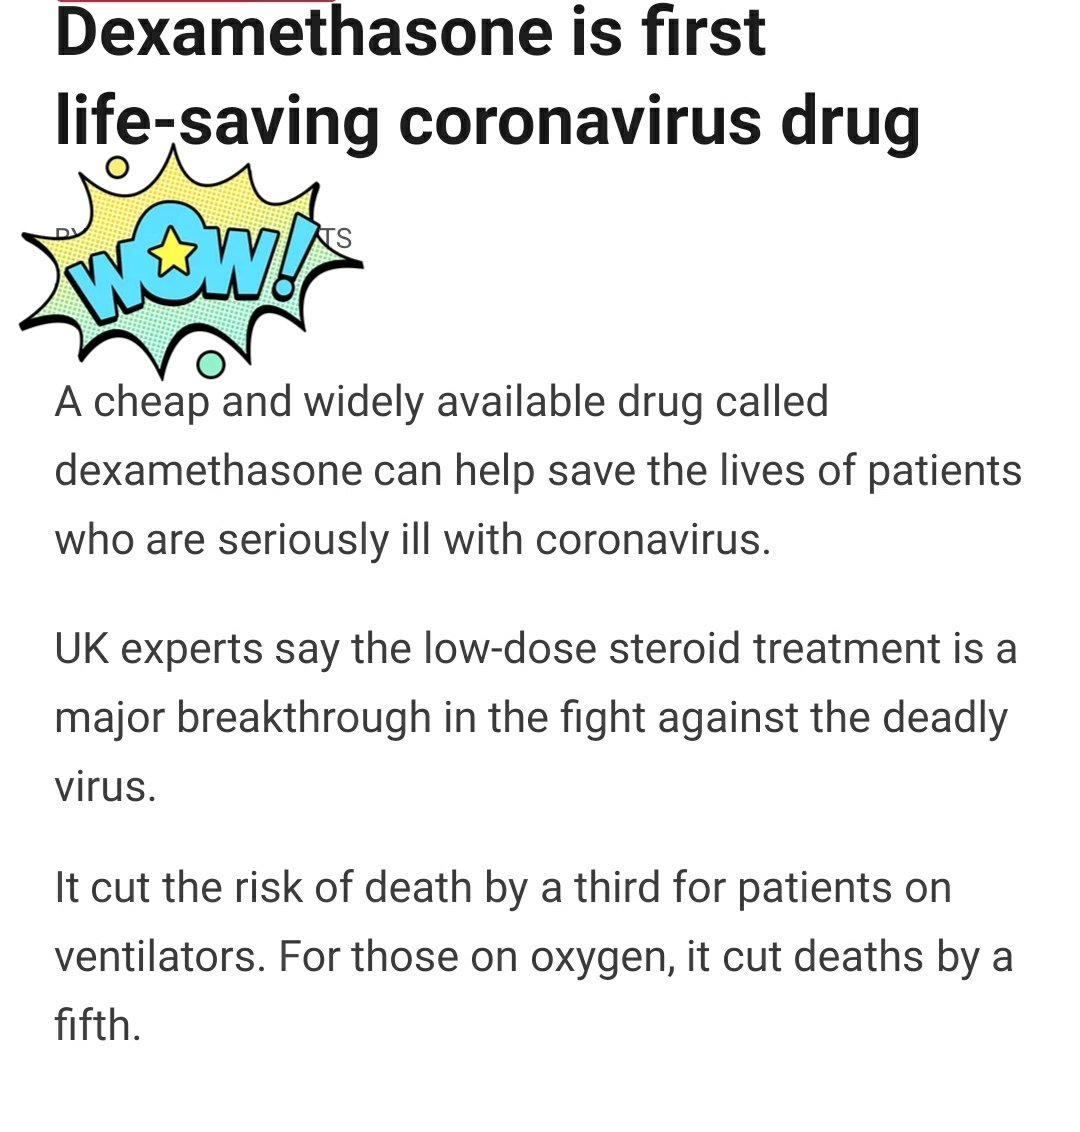 Major breakthrough, Dexamethasone is a major breakthrough in the fight against deadly corona virus even though it affects immune system ✌️ It cuts the risk of death 🙏 #dexamethasone #corona